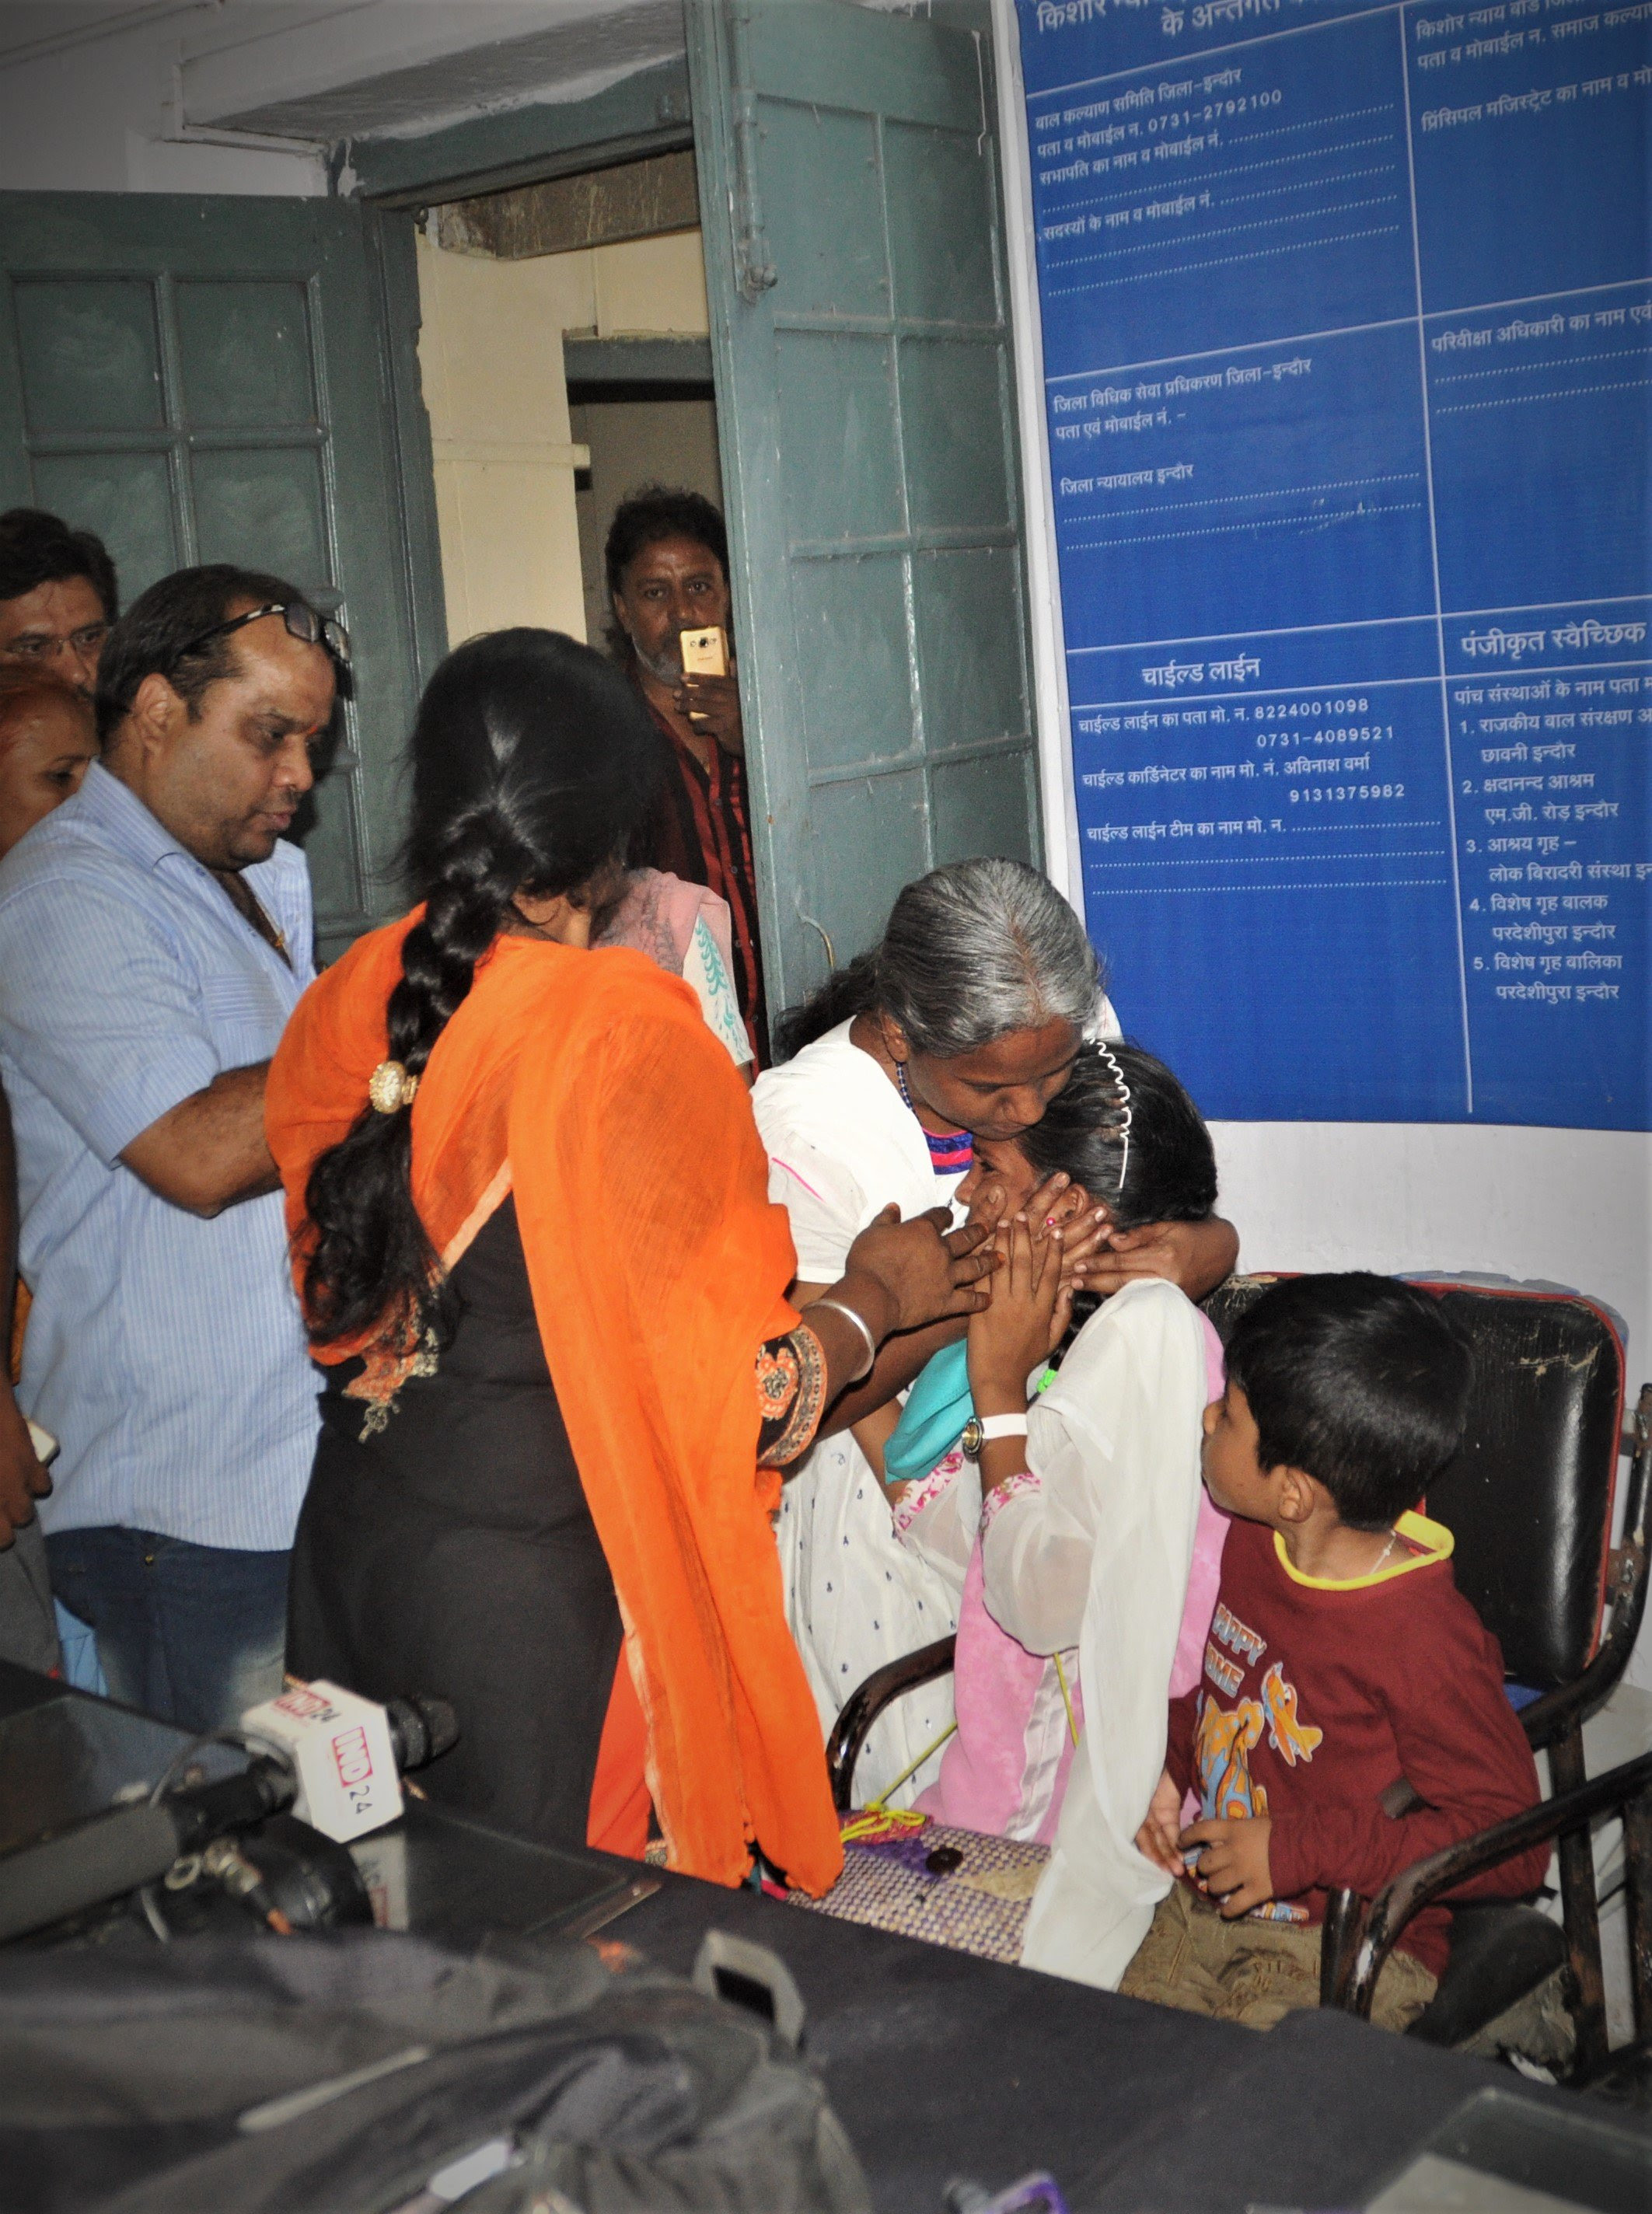 A mother tries to comfort her crying daughter, one of seven children detained at the railway police station in Indore, India, before they were separated. Hindu extremist group leader Vinod Mishra is in blue shirt. (Pawan Bhawar)